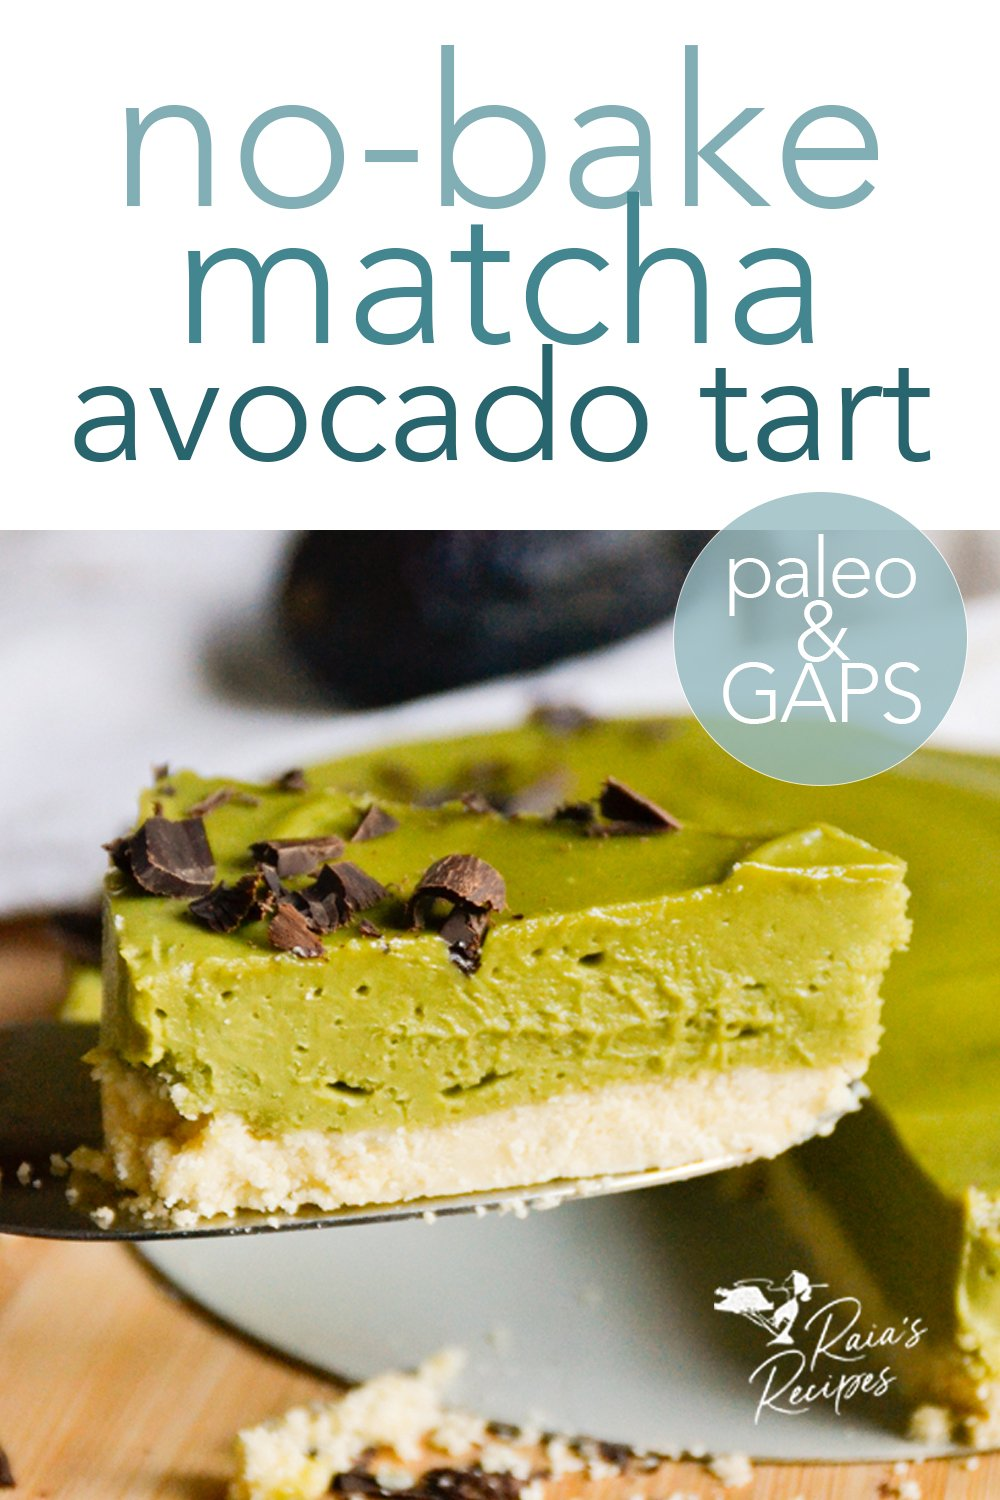 Easy and packed with flavor and nutrition, this no-bake matcha avocado tart is a sure winner for dessert when you don't want to turn the oven on! Perfect for paleo and full GAPS diets. #matcha #avocado #rawfood #paleo #gapsdiet #dessert #glutenfree #dairyfree #eggfree #refinedsugarfree #nobake